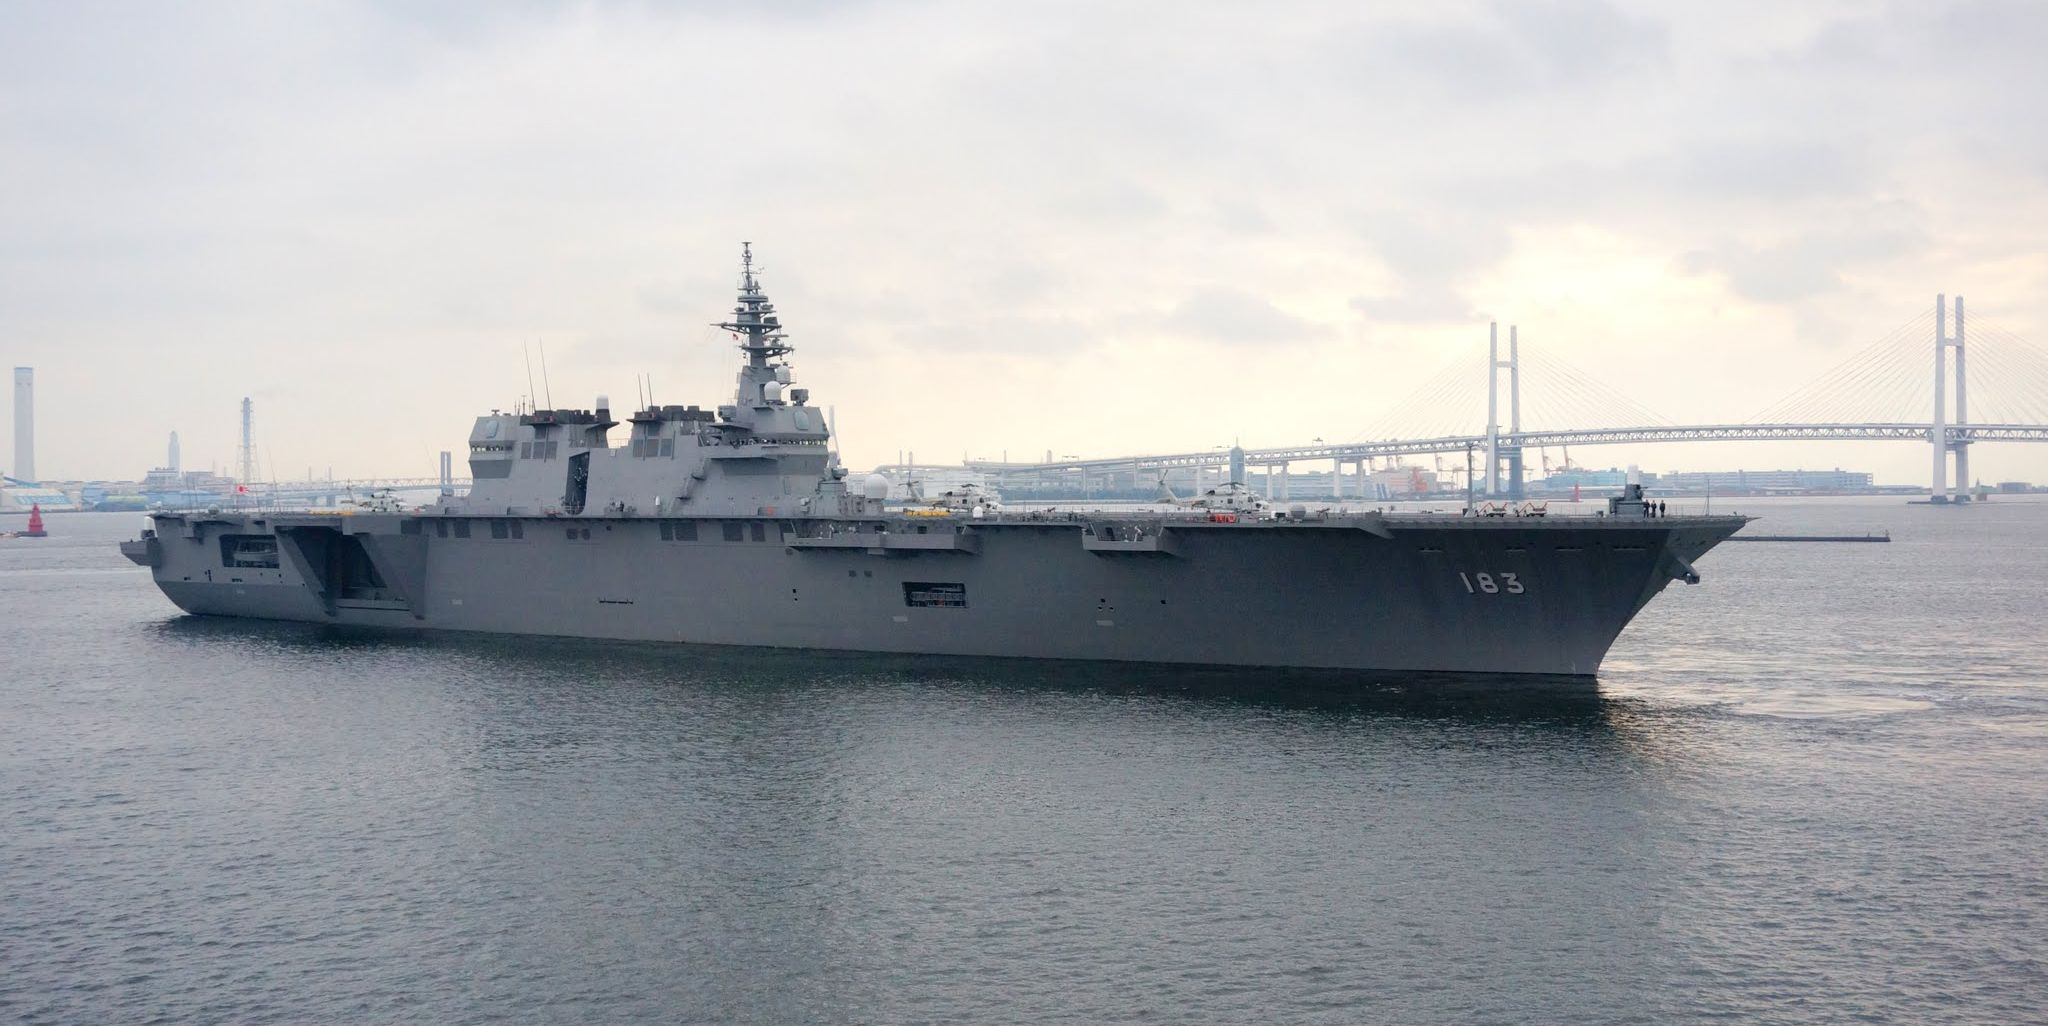 Japan Considers Converting Ships to Aircraft Carriers